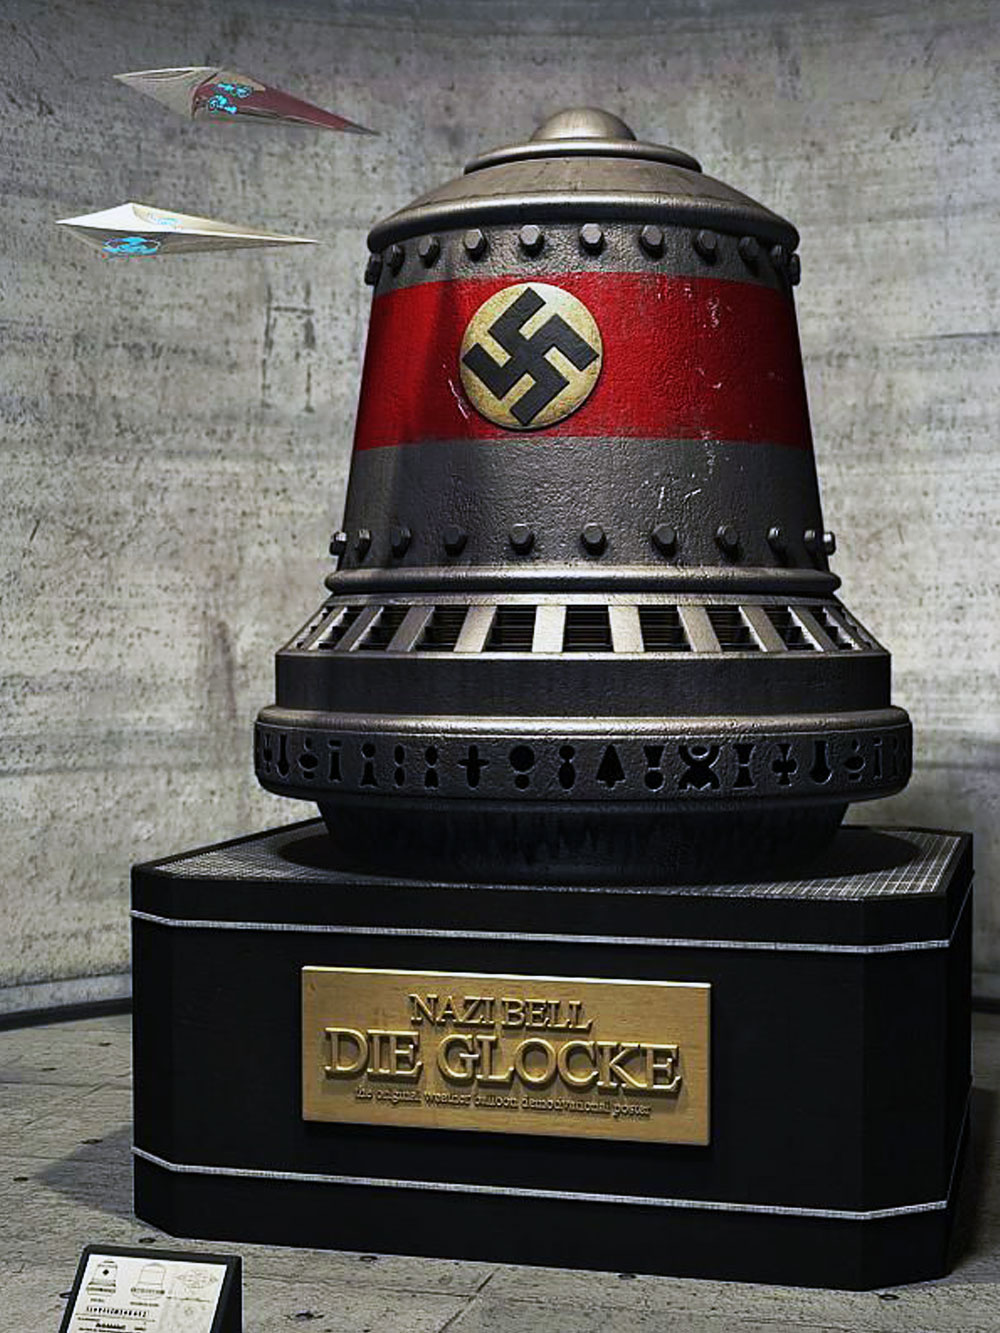 Nazi time machine die glocke